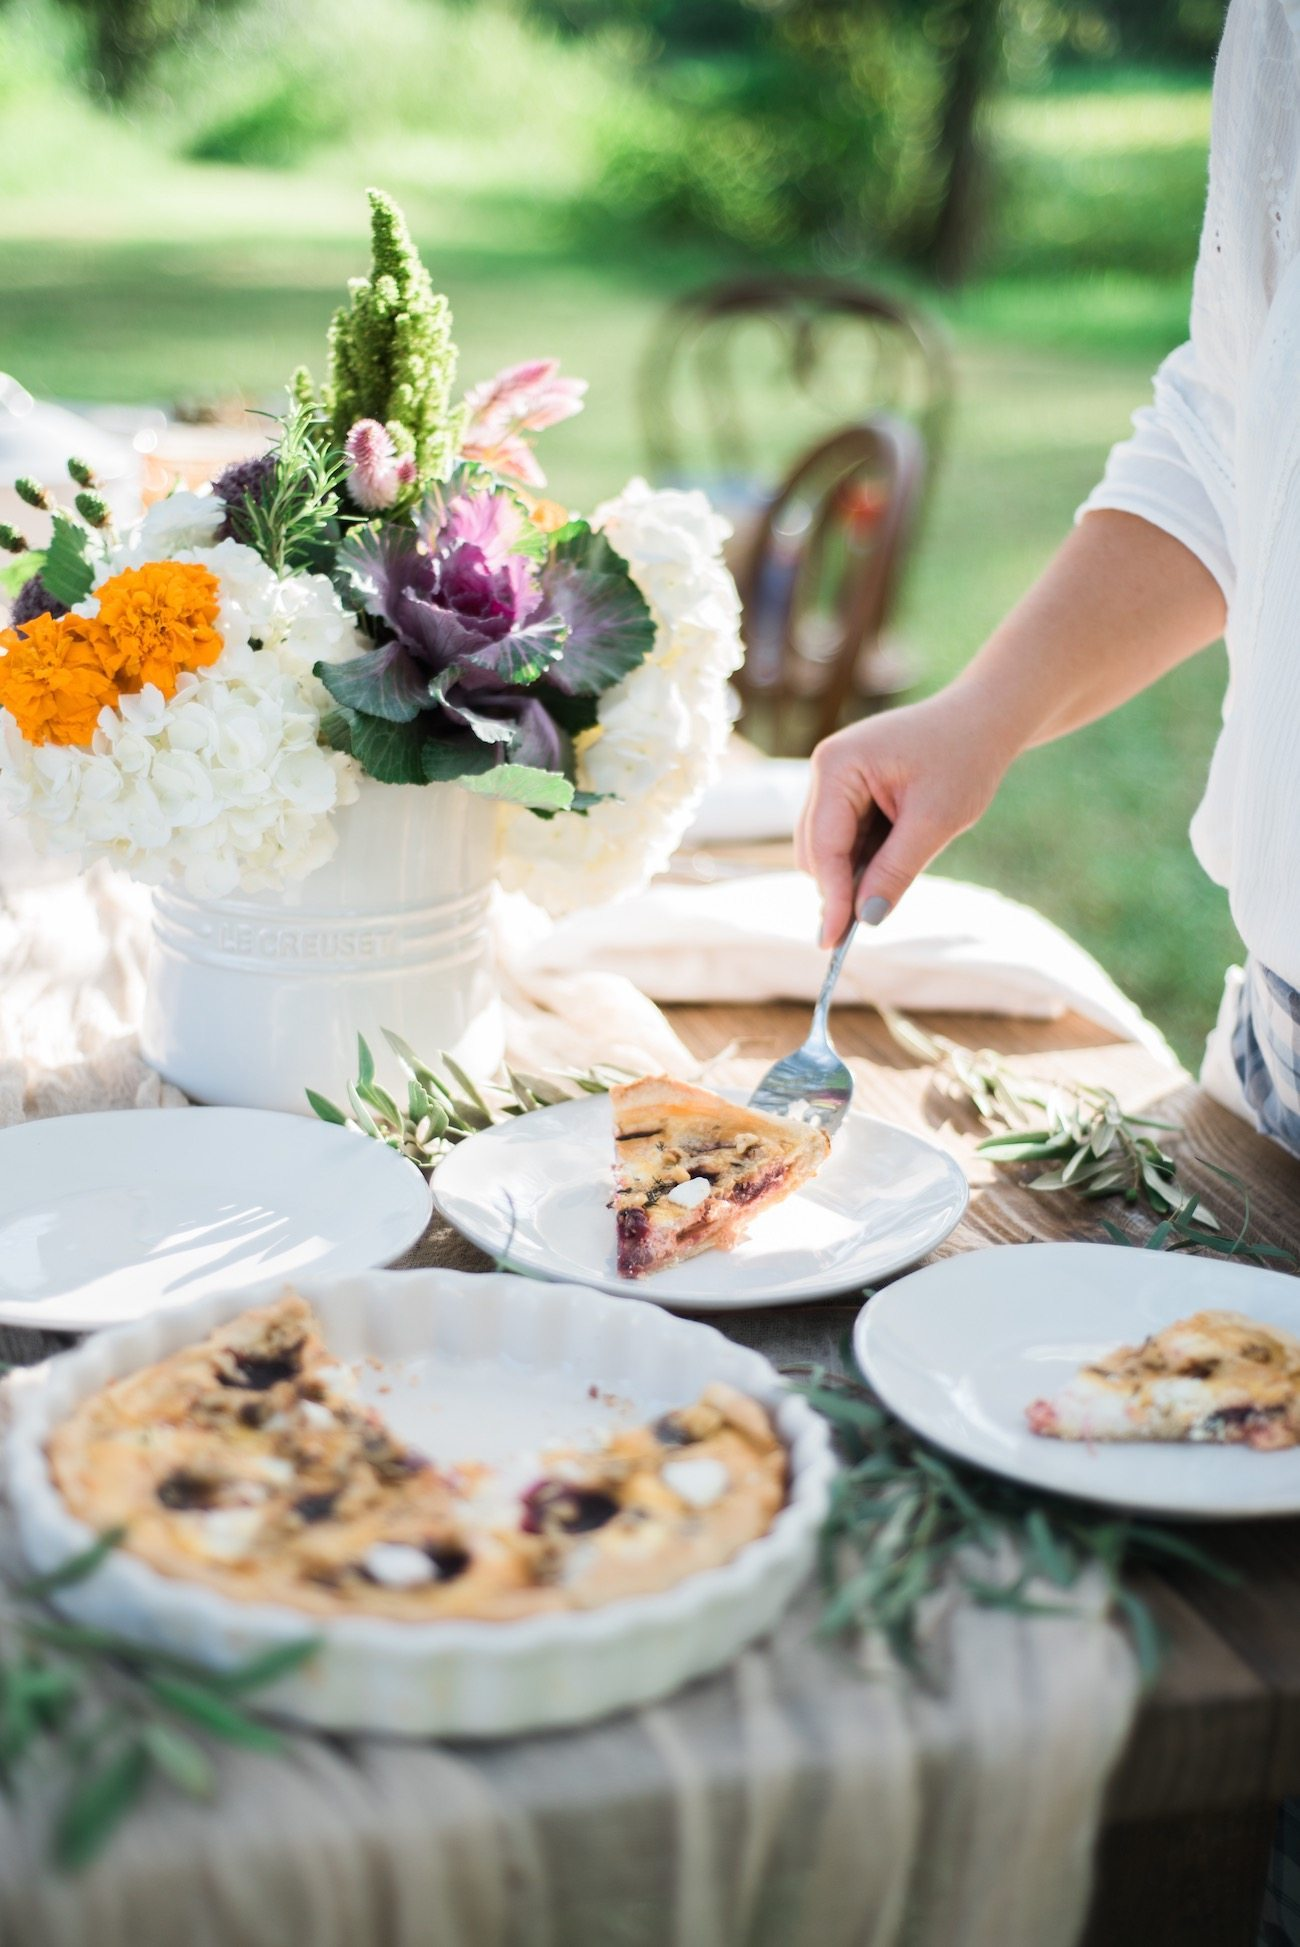 A Garden to Table Fall Dinner Party - The Sweetest Occasion